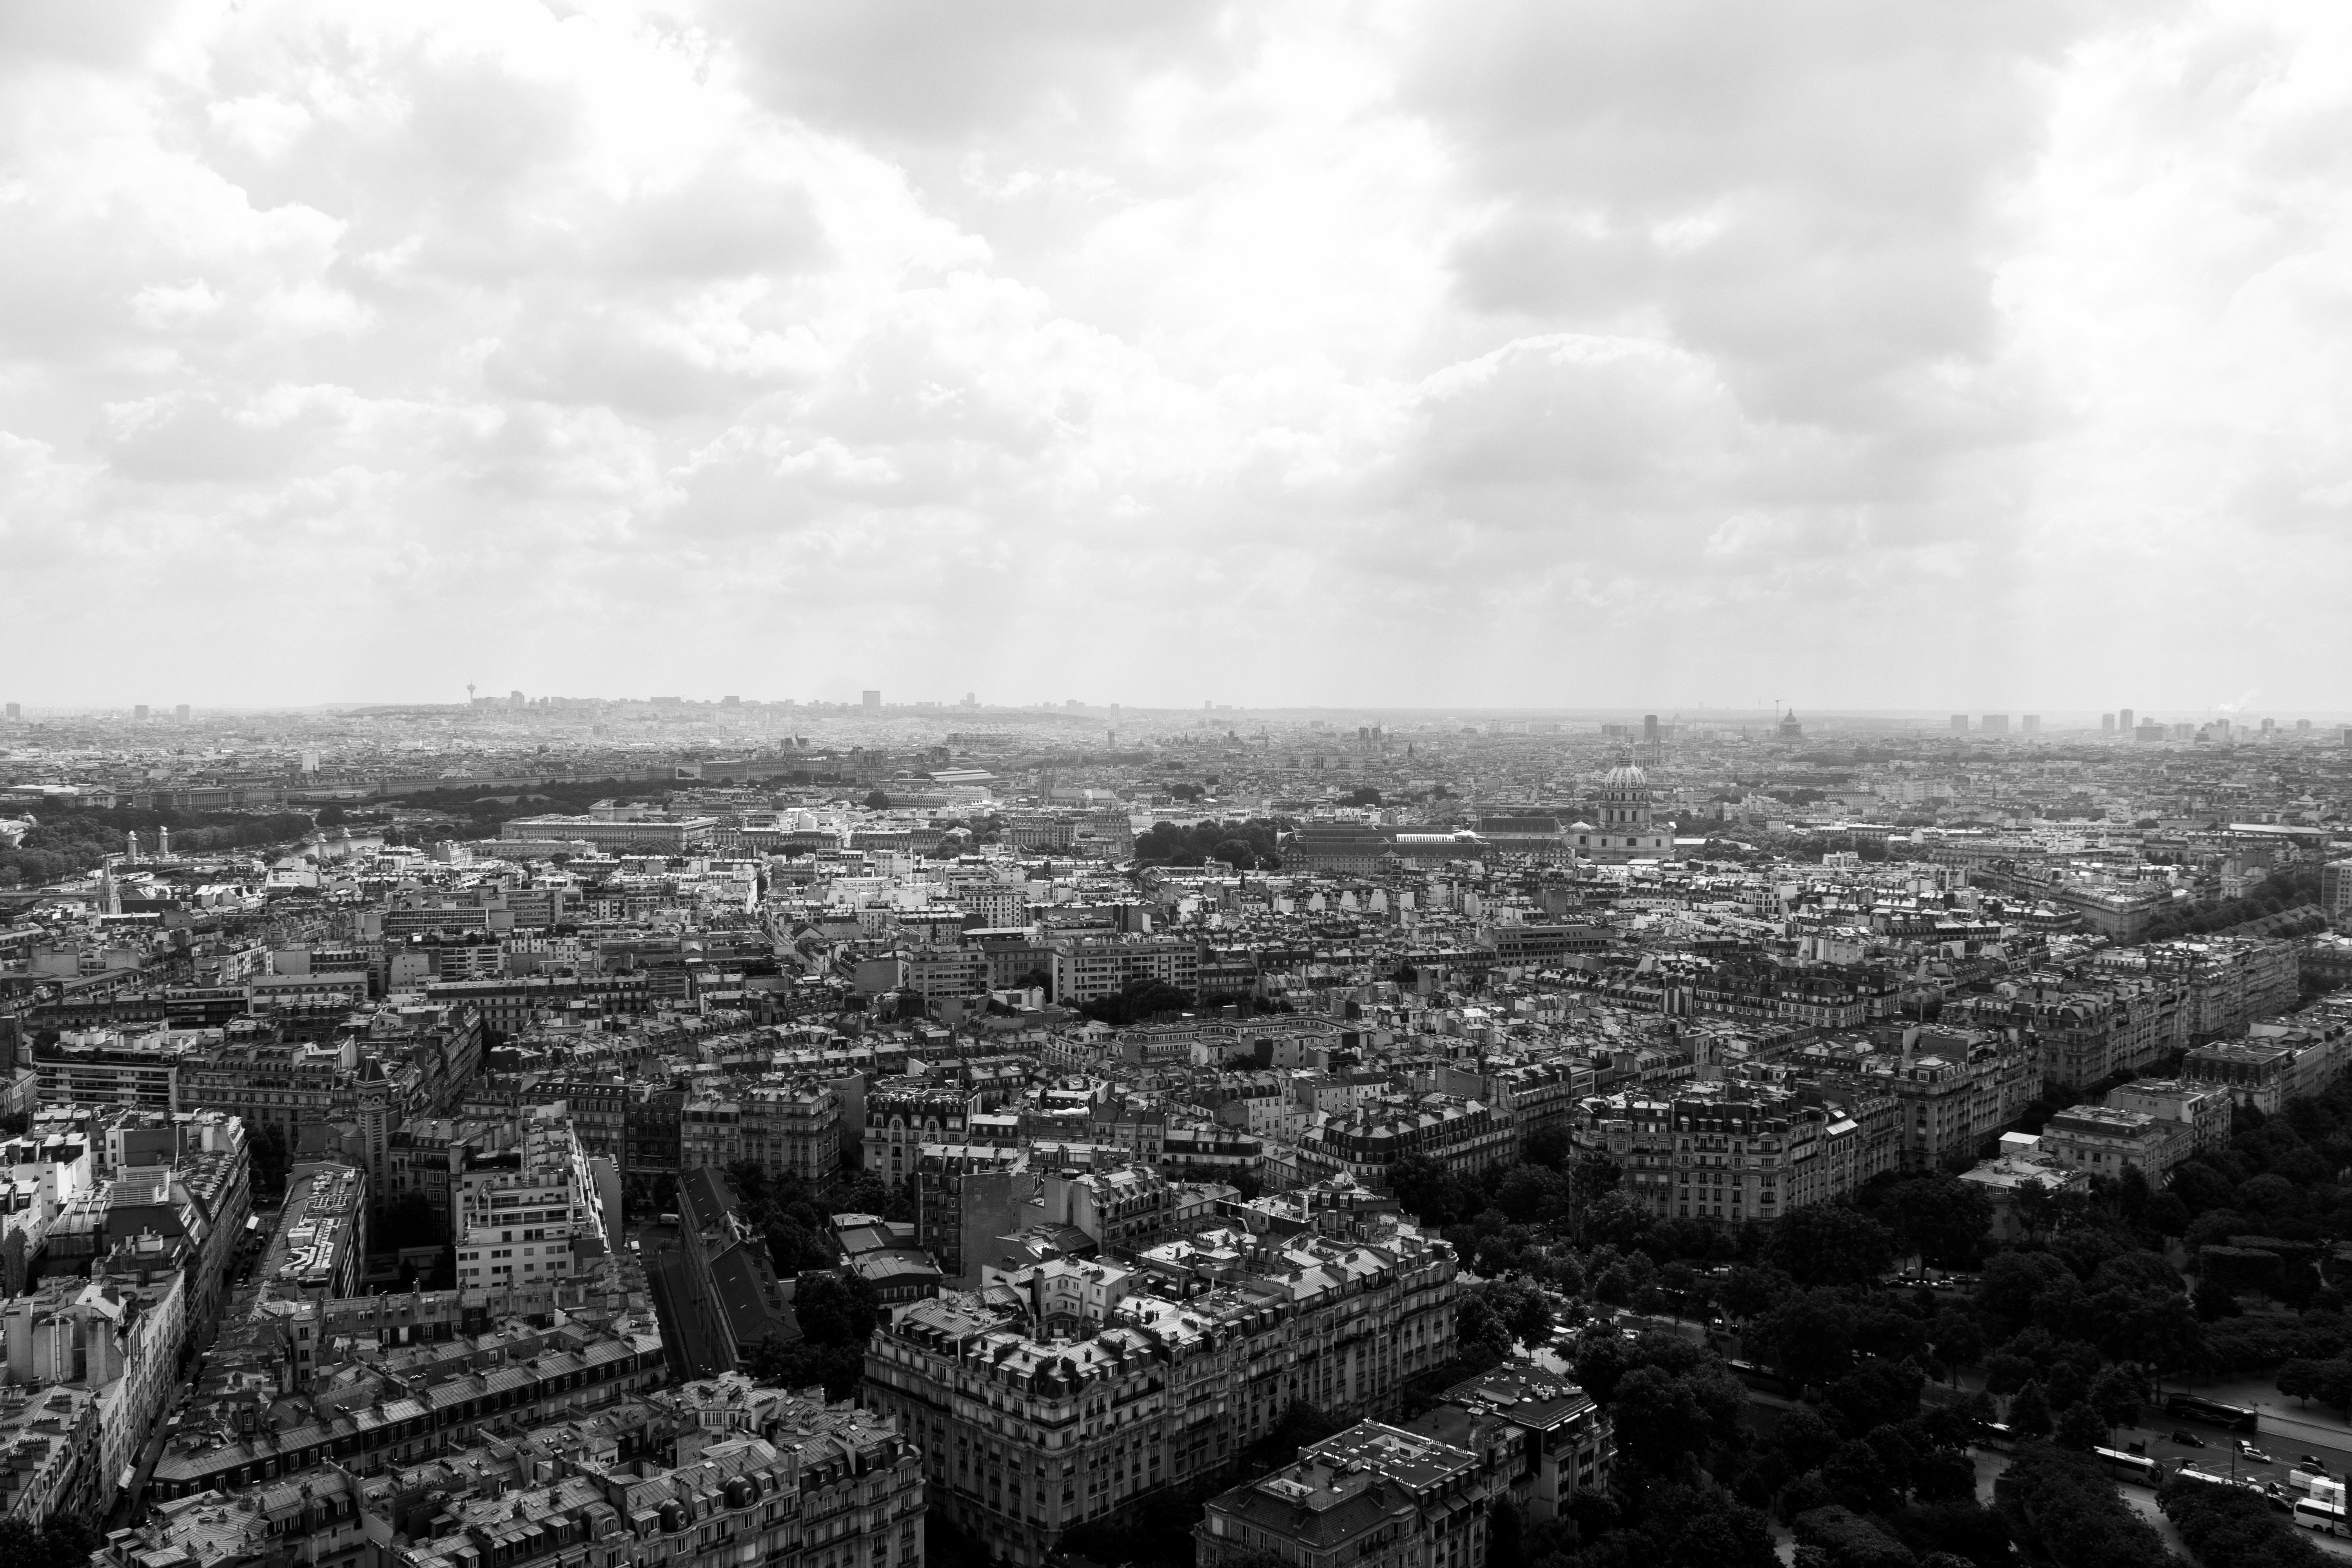 A black and white photo of the Paris cityscape on a cloudy day.